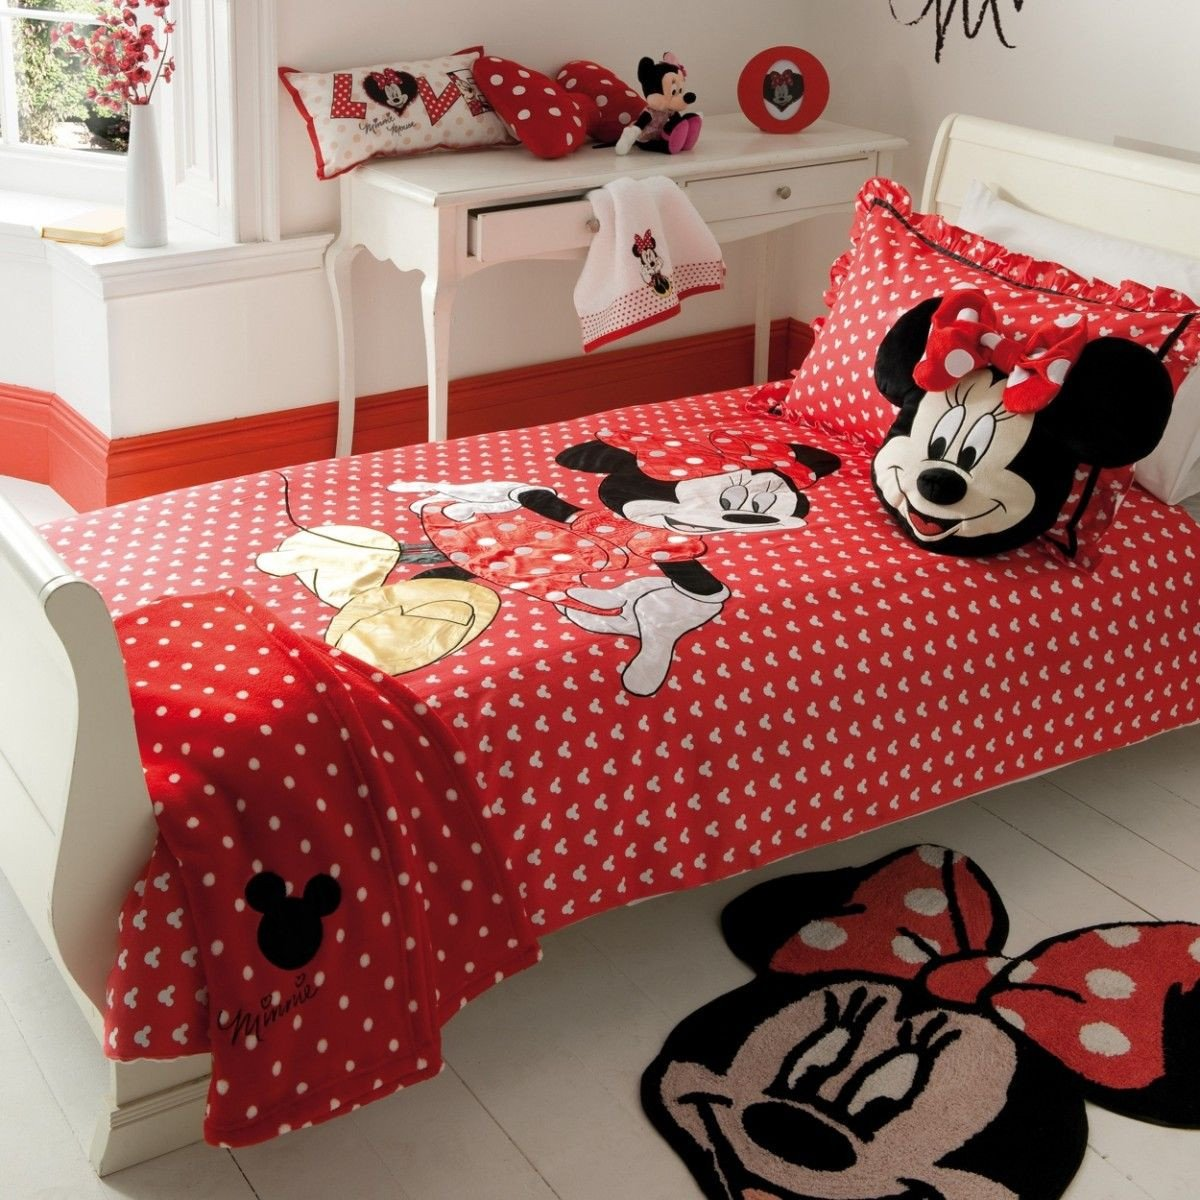 Minnie Mouse Bedroom Set Lovely Minnie Mouse Wall Decorating Kit